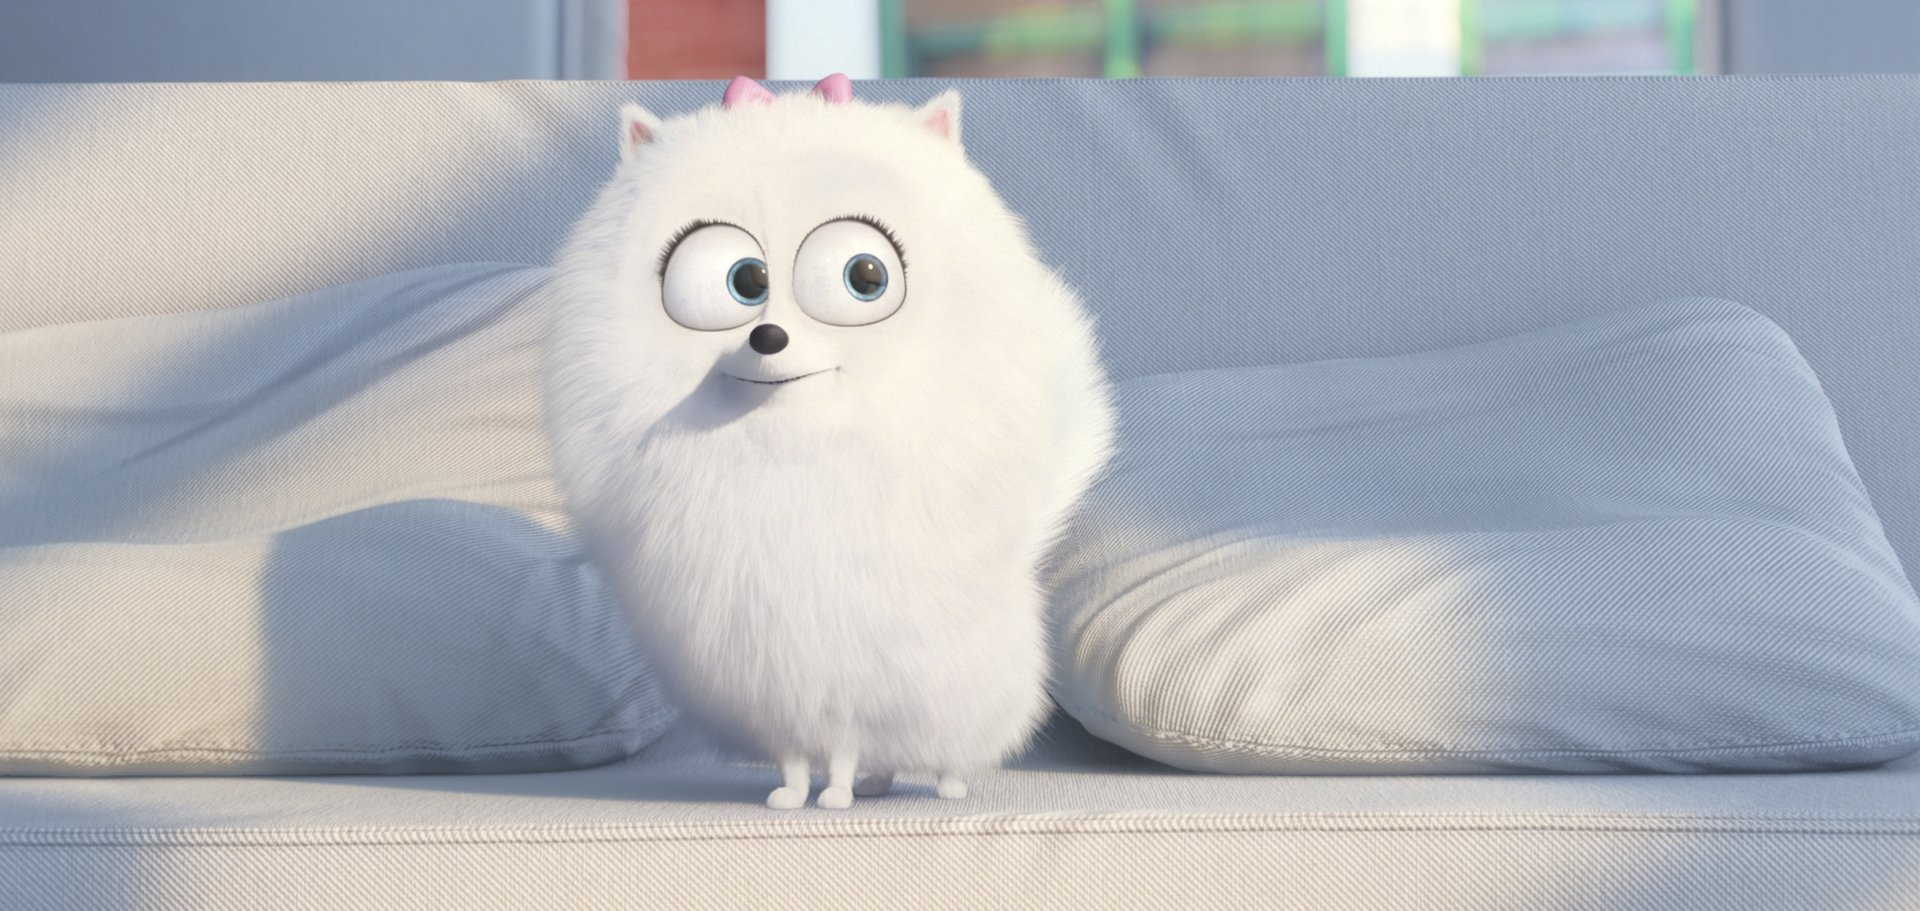 2 Gidget The Secret Life Of Pets Hd Wallpapers Background Images Wallpaper Abyss